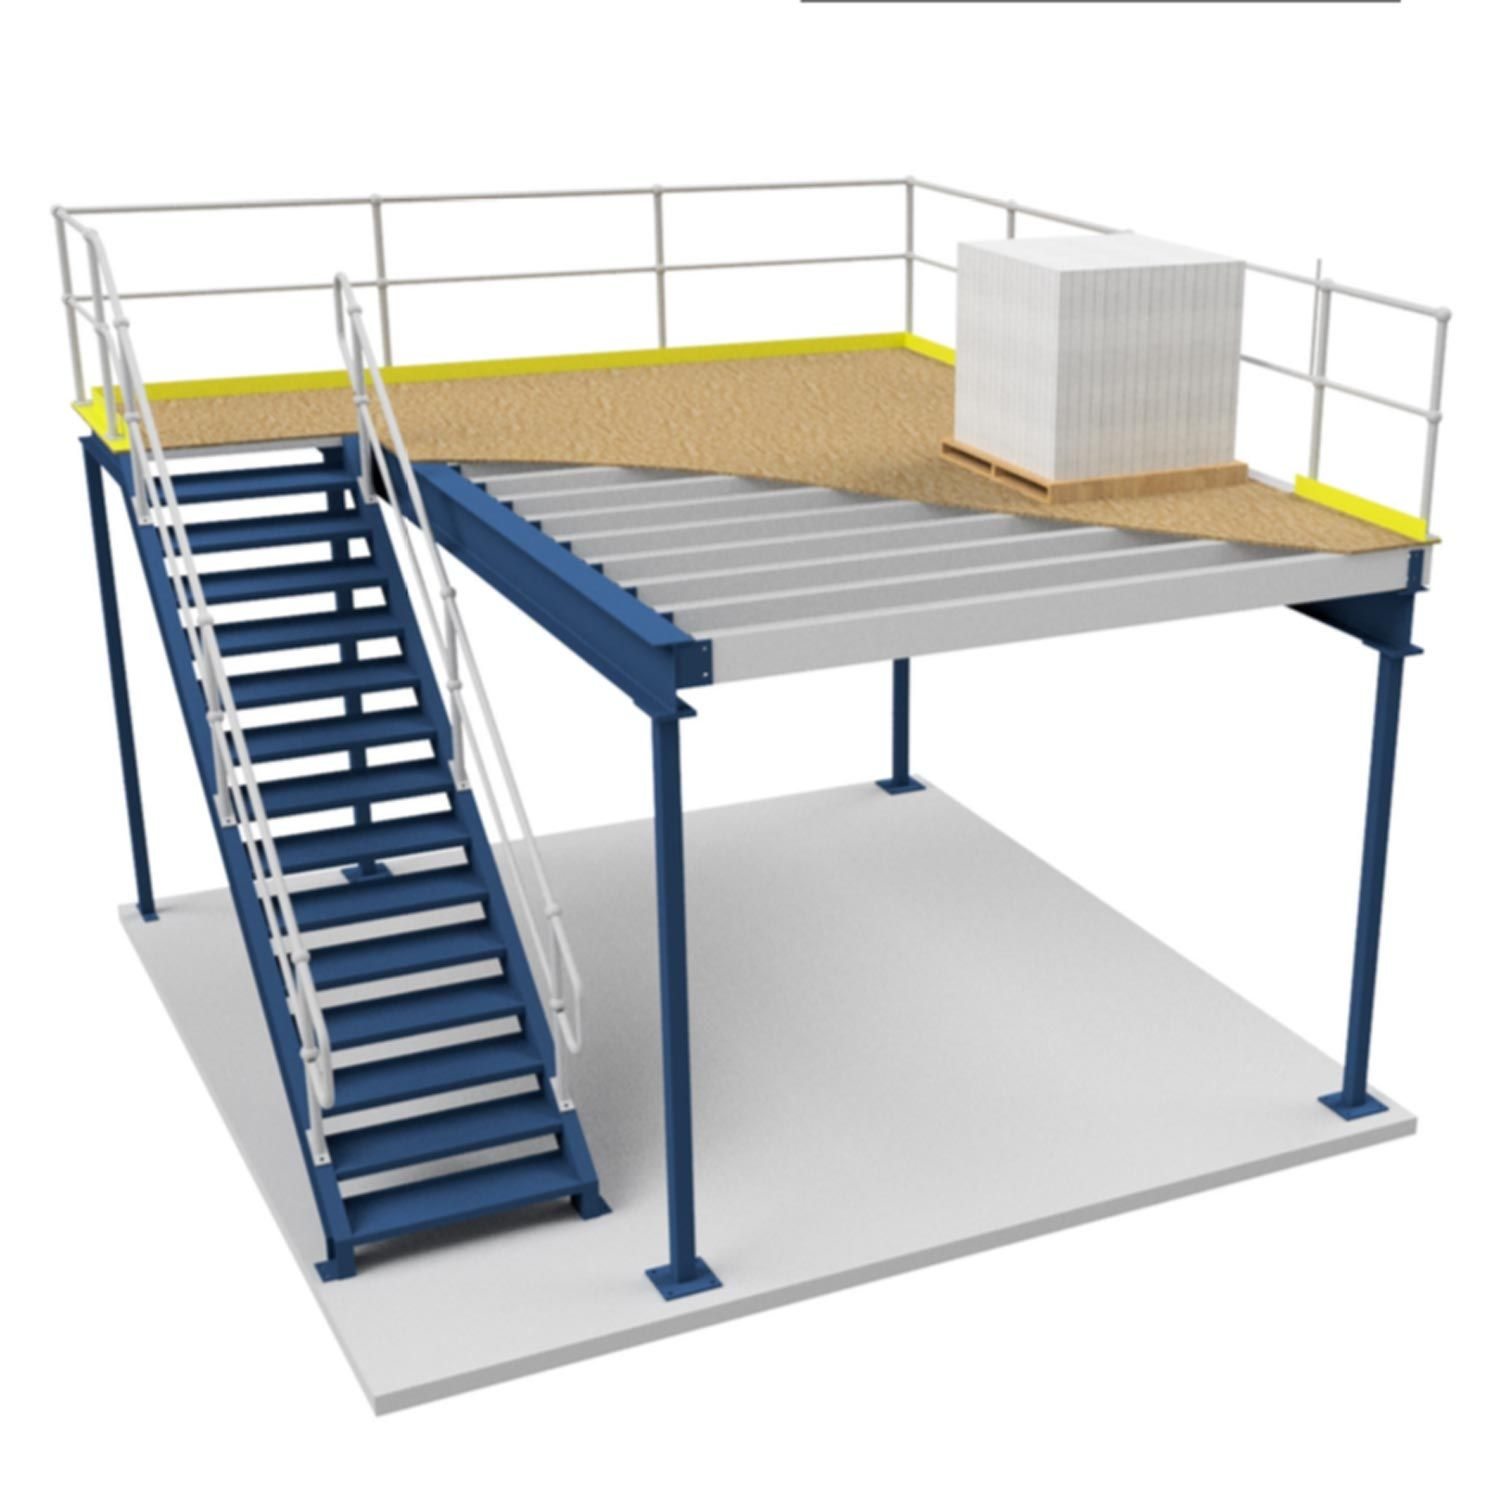 5078b766f3a21ad74af599790fc1b85e - Download Mezzanine Floor Simple Mezzanine Design For Small House PNG